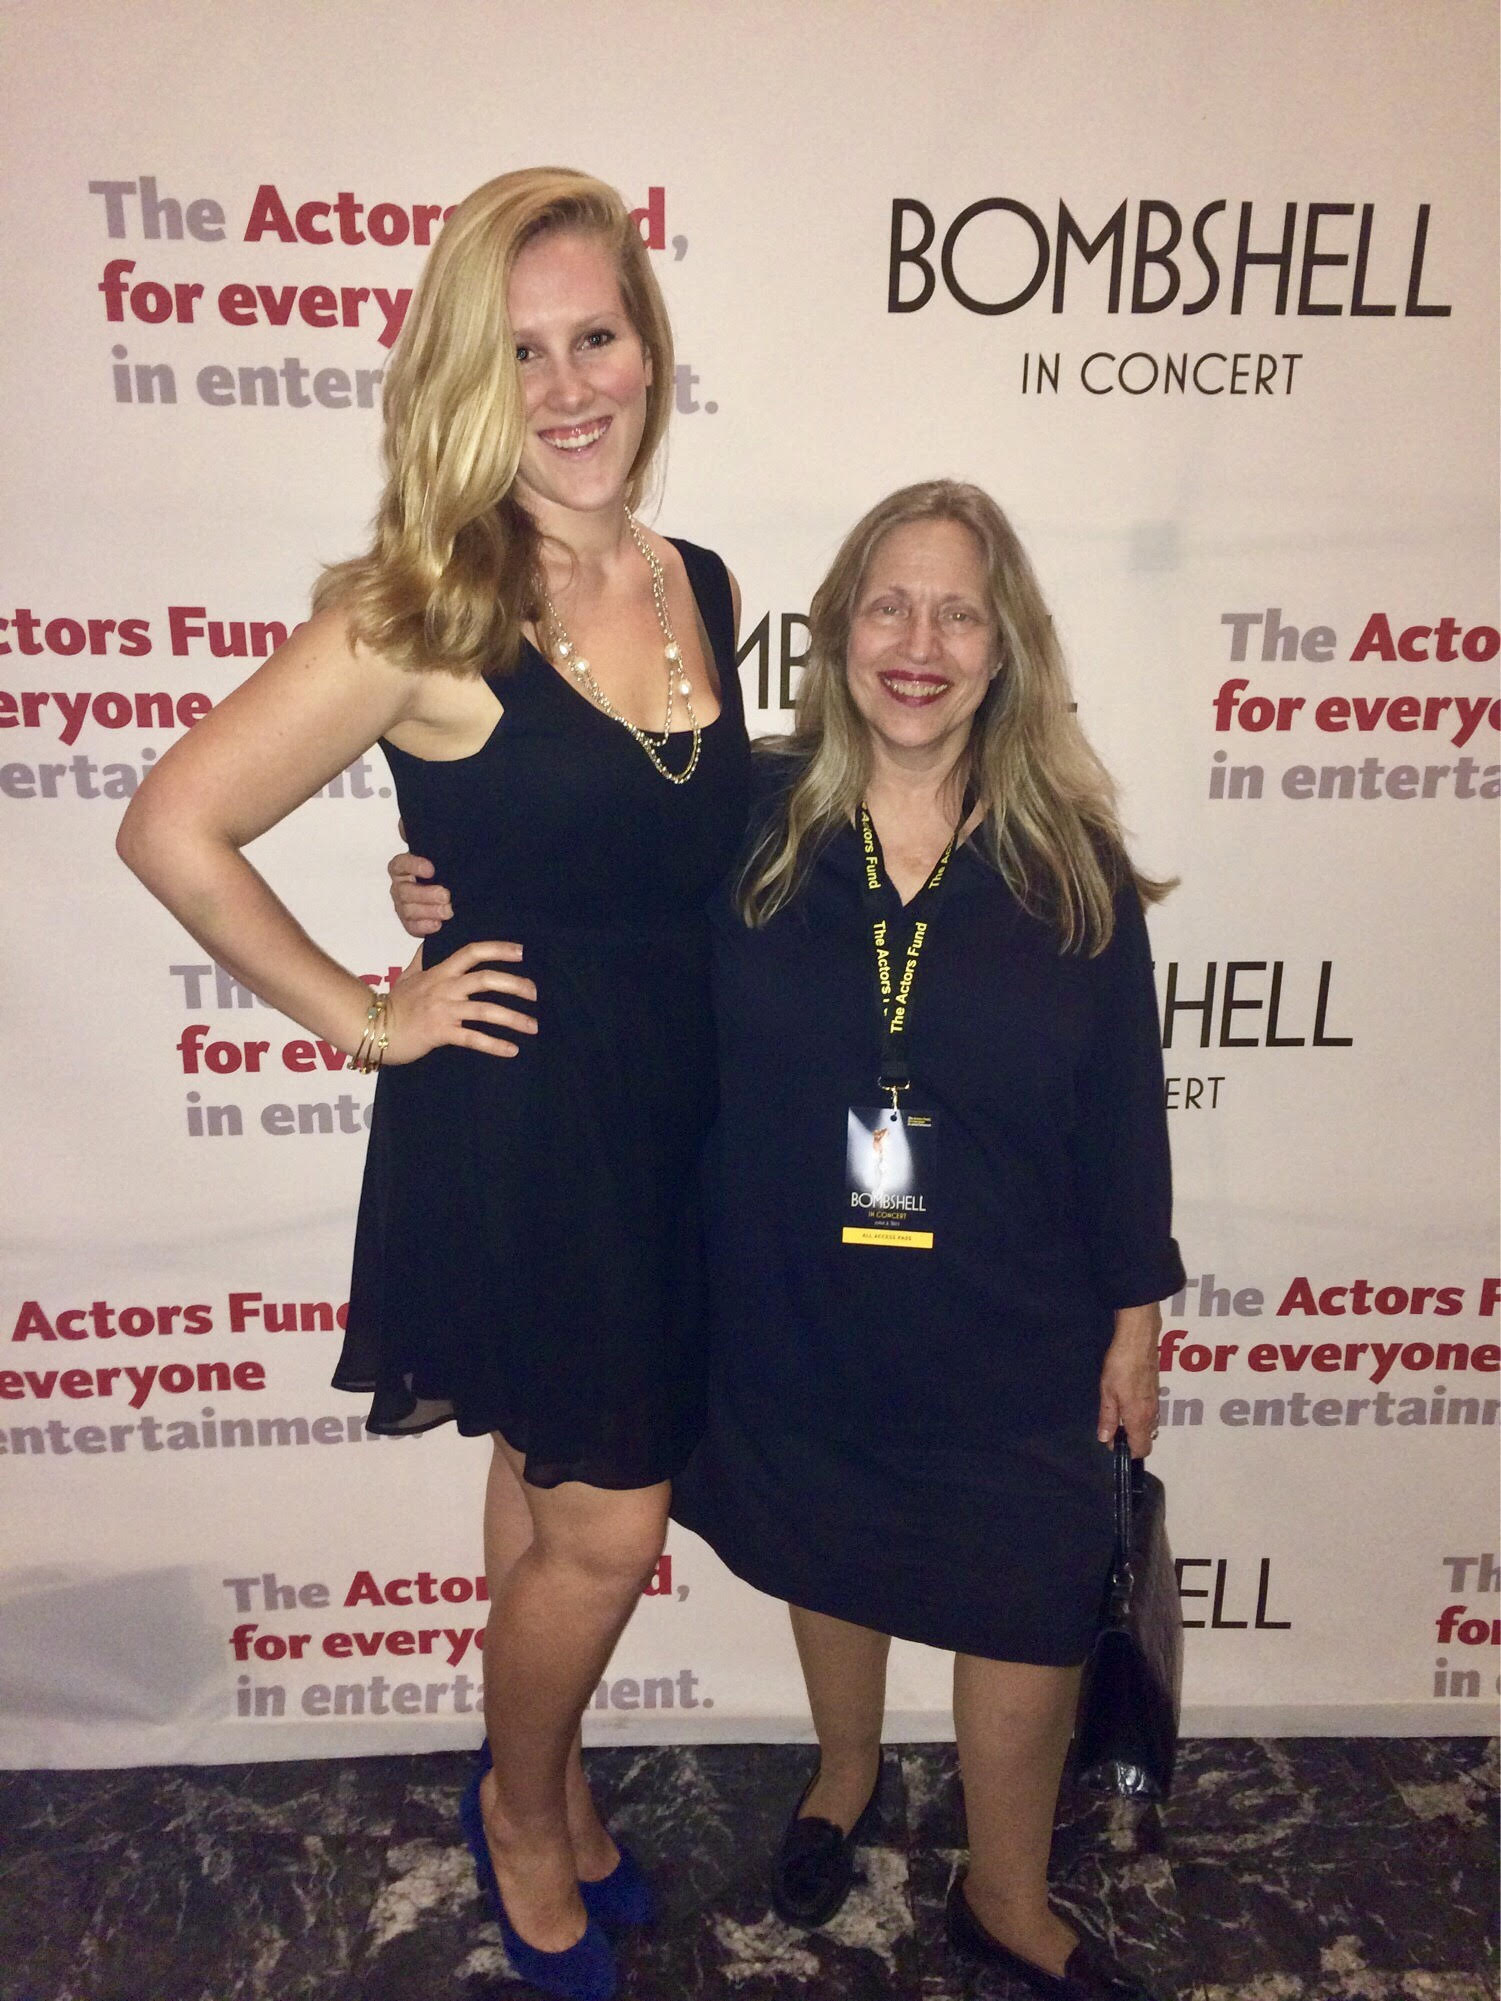 The first time I ever went to the Minskoff Theater I was backstage dressing the Bombshell benefit concert with my friend Barb. She is an Originol Wicked dresser. June 2015.